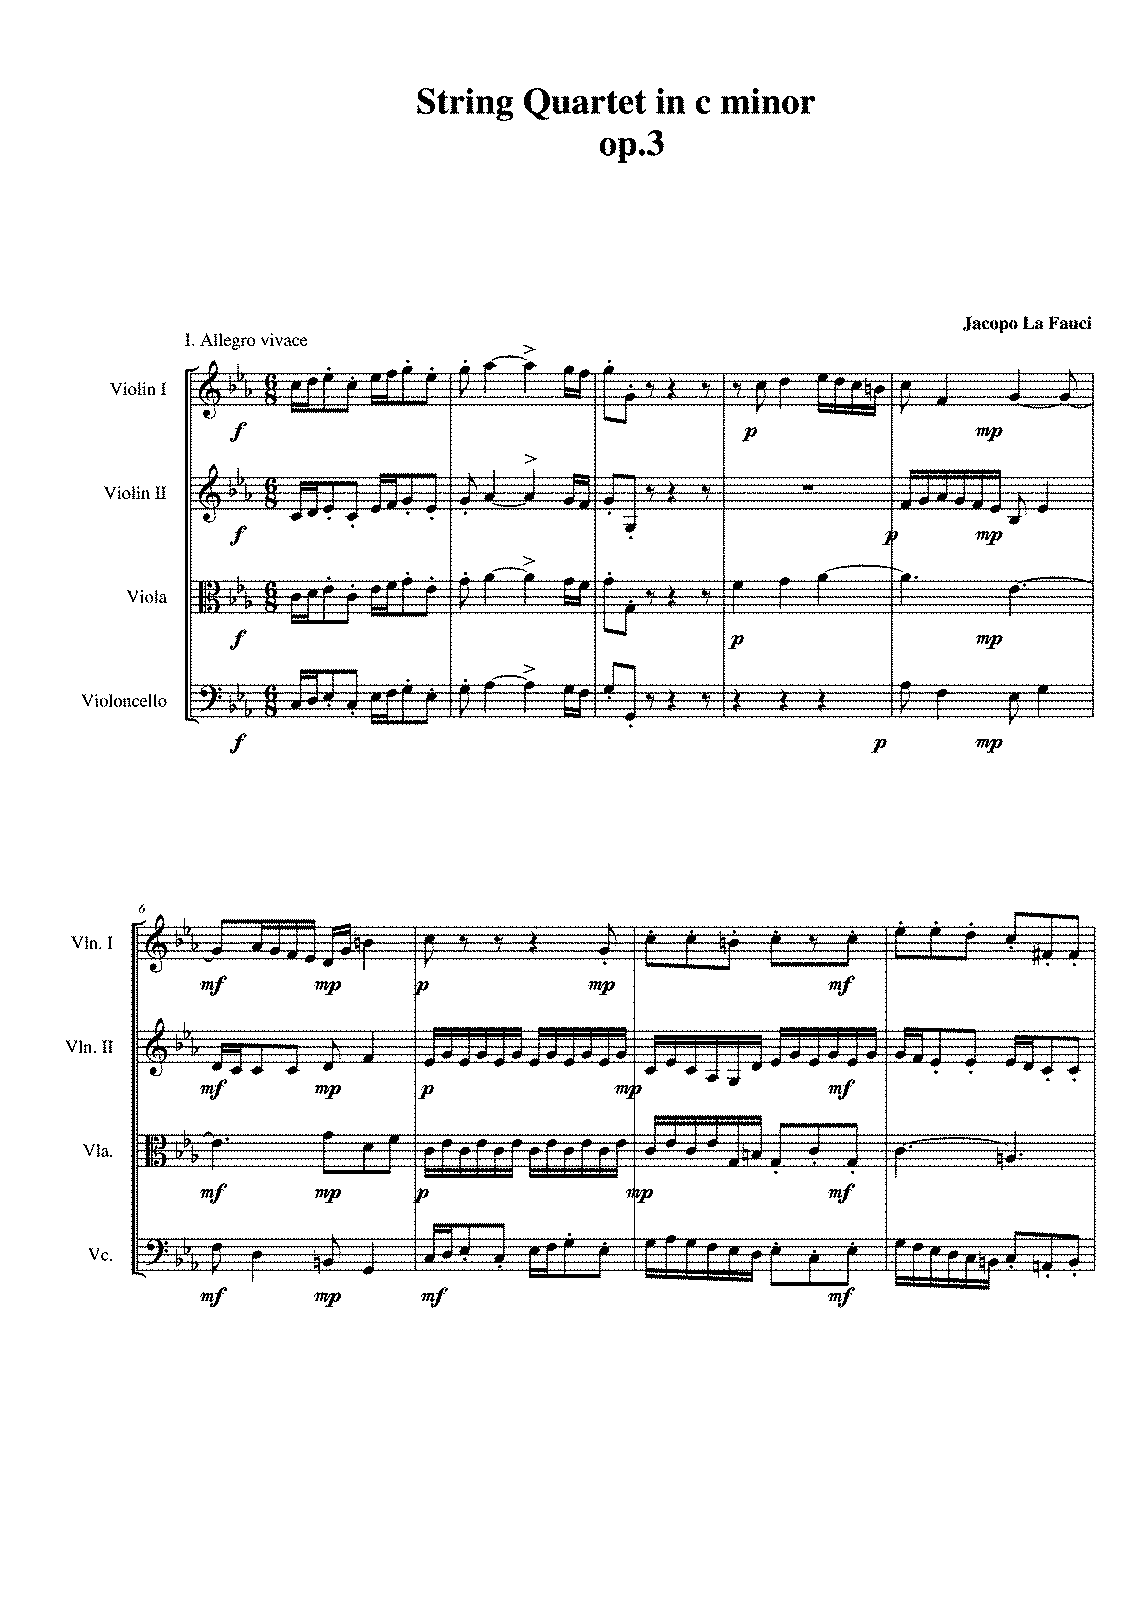 PMLP83731-Jacopo La Fauci - String Quartet in c minor op.3 - I. Allegro vivace.pdf